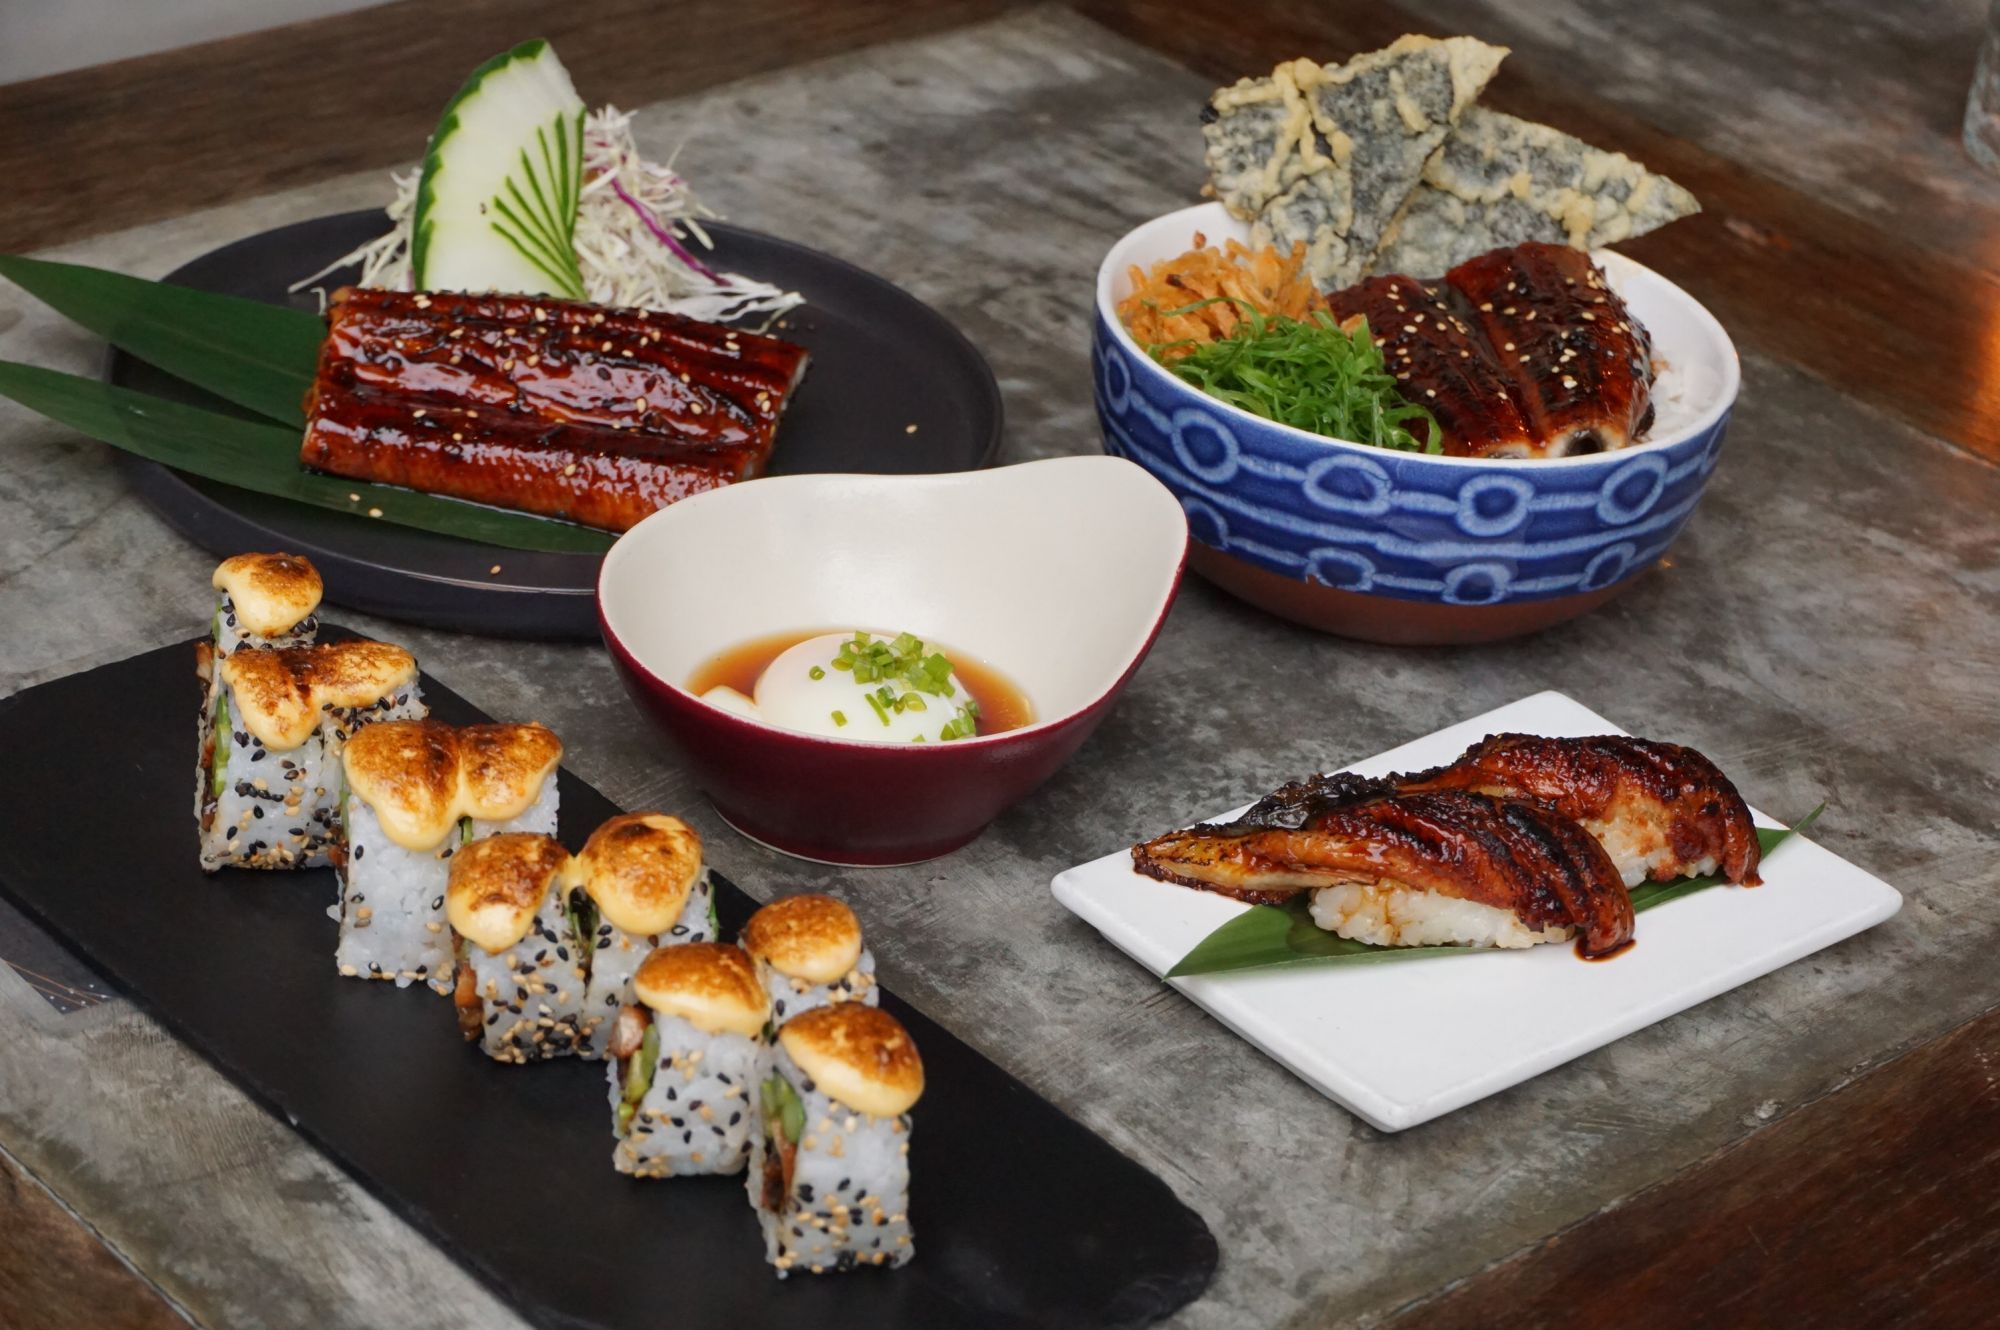 Dining Update: At Nikkei, There are More Reasons to Crave Unagi